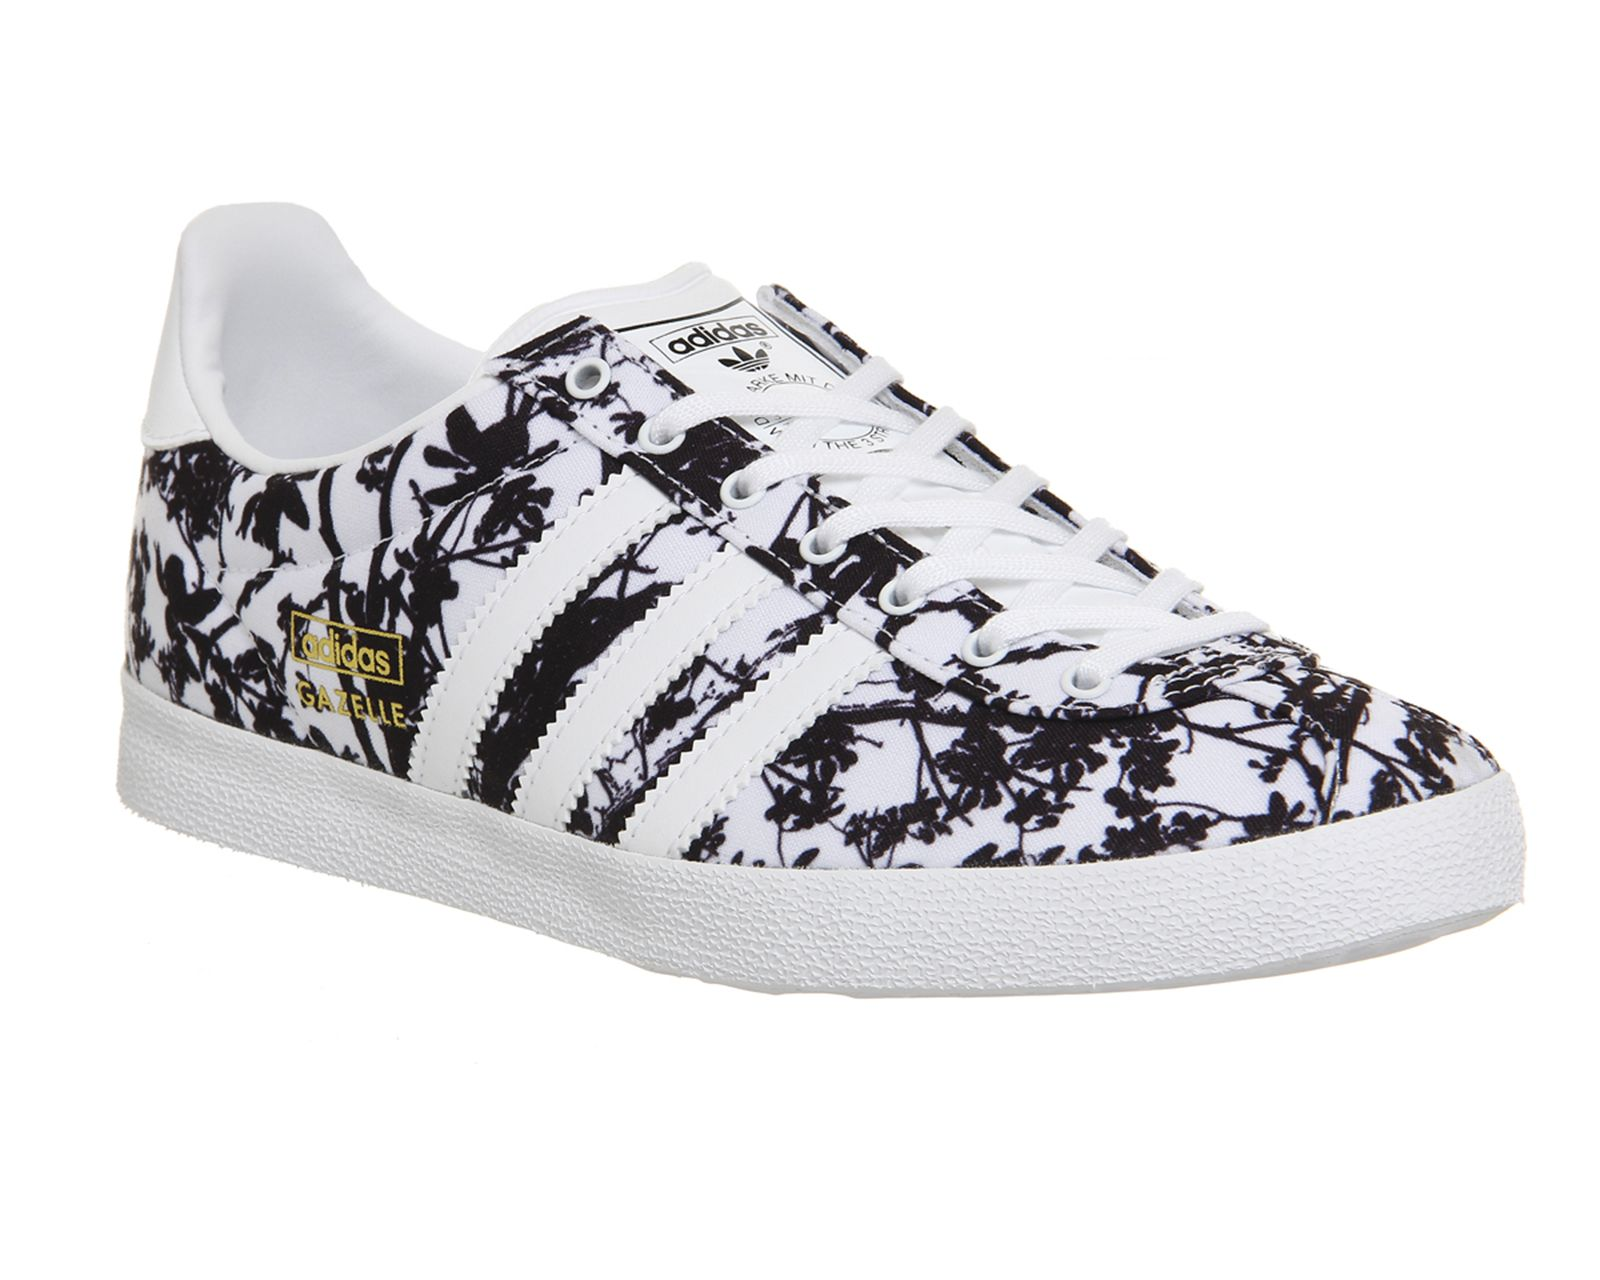 Buy White Black Floral Print Adidas Gazelle Og W from OFFICE.co.uk. Floral  SneakersGold SneakersShoes ...